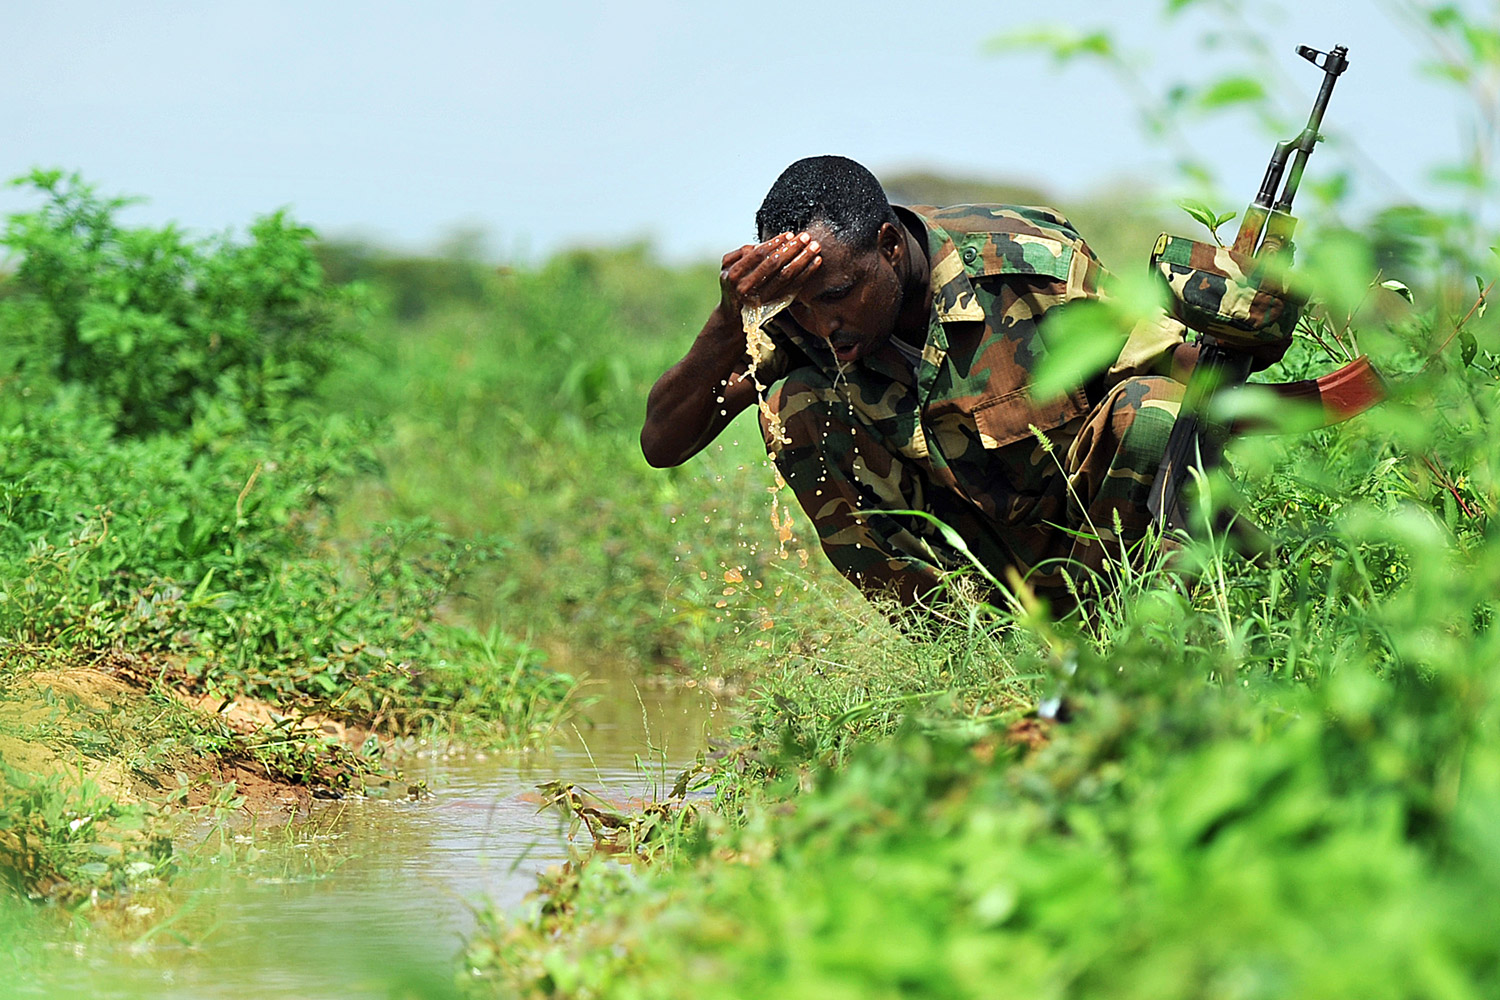 November 21, 2011. A Somali militia washes his face in a lush field near an irrigation scheme that grows onions and vegetables near Dollow, central Somalia. United Nations announced last week that three of six regions of southern Somalia including  Bay, Bakool and Lower Shabelle, that had been declared famine-areas in July were no longer so even though the lives of 250,000 Somalis continue to be threatened by drought.